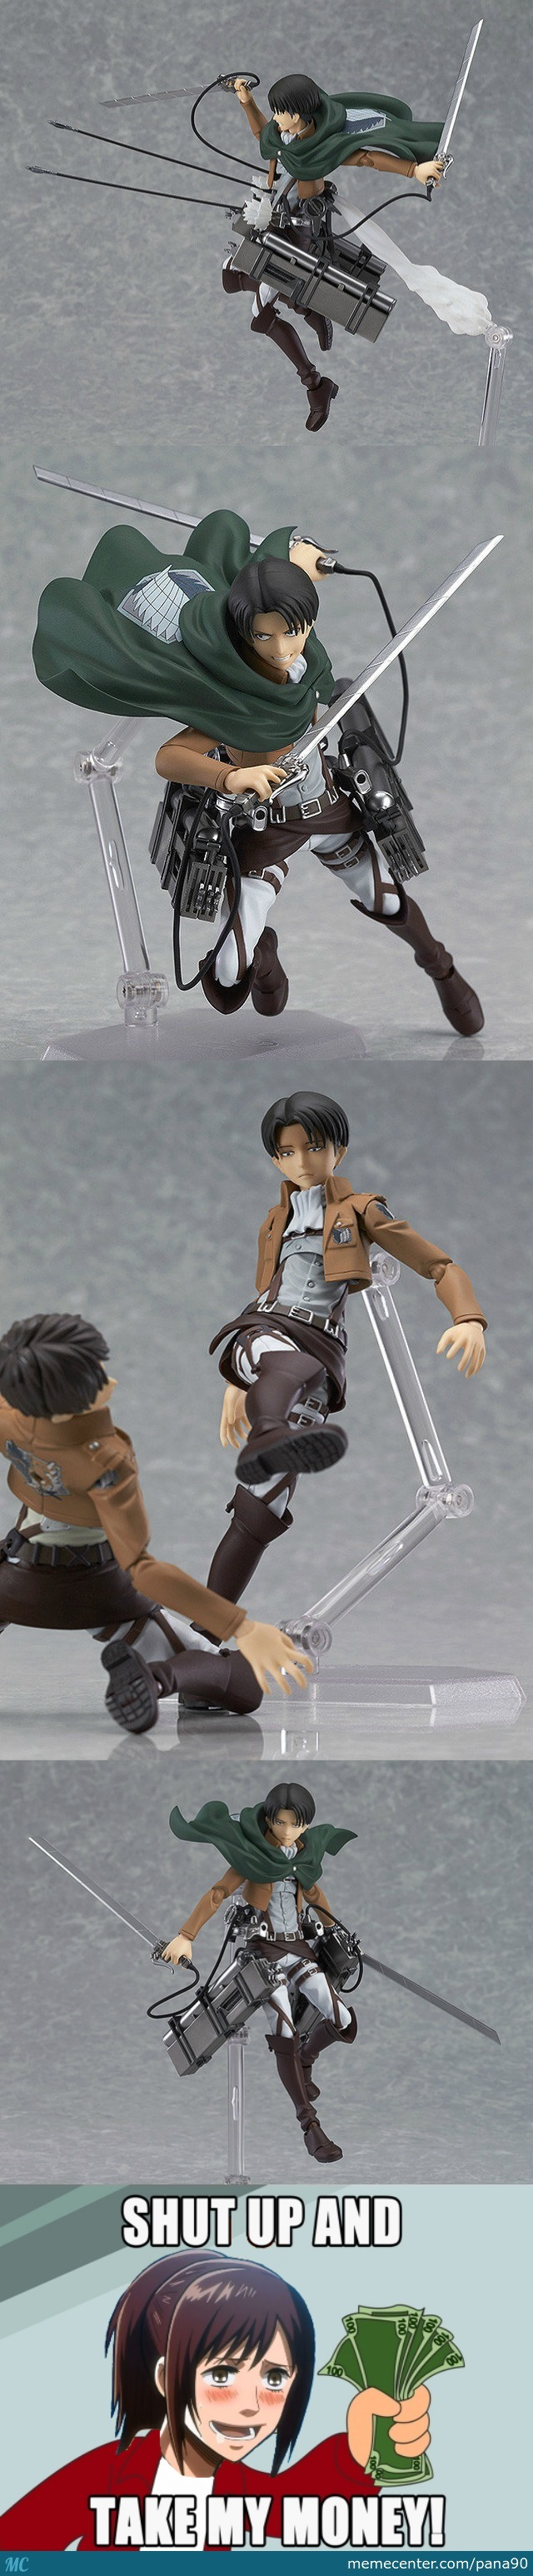 Shingeki No Kyojin Figurines (Credit To Zain.mustafa.399)